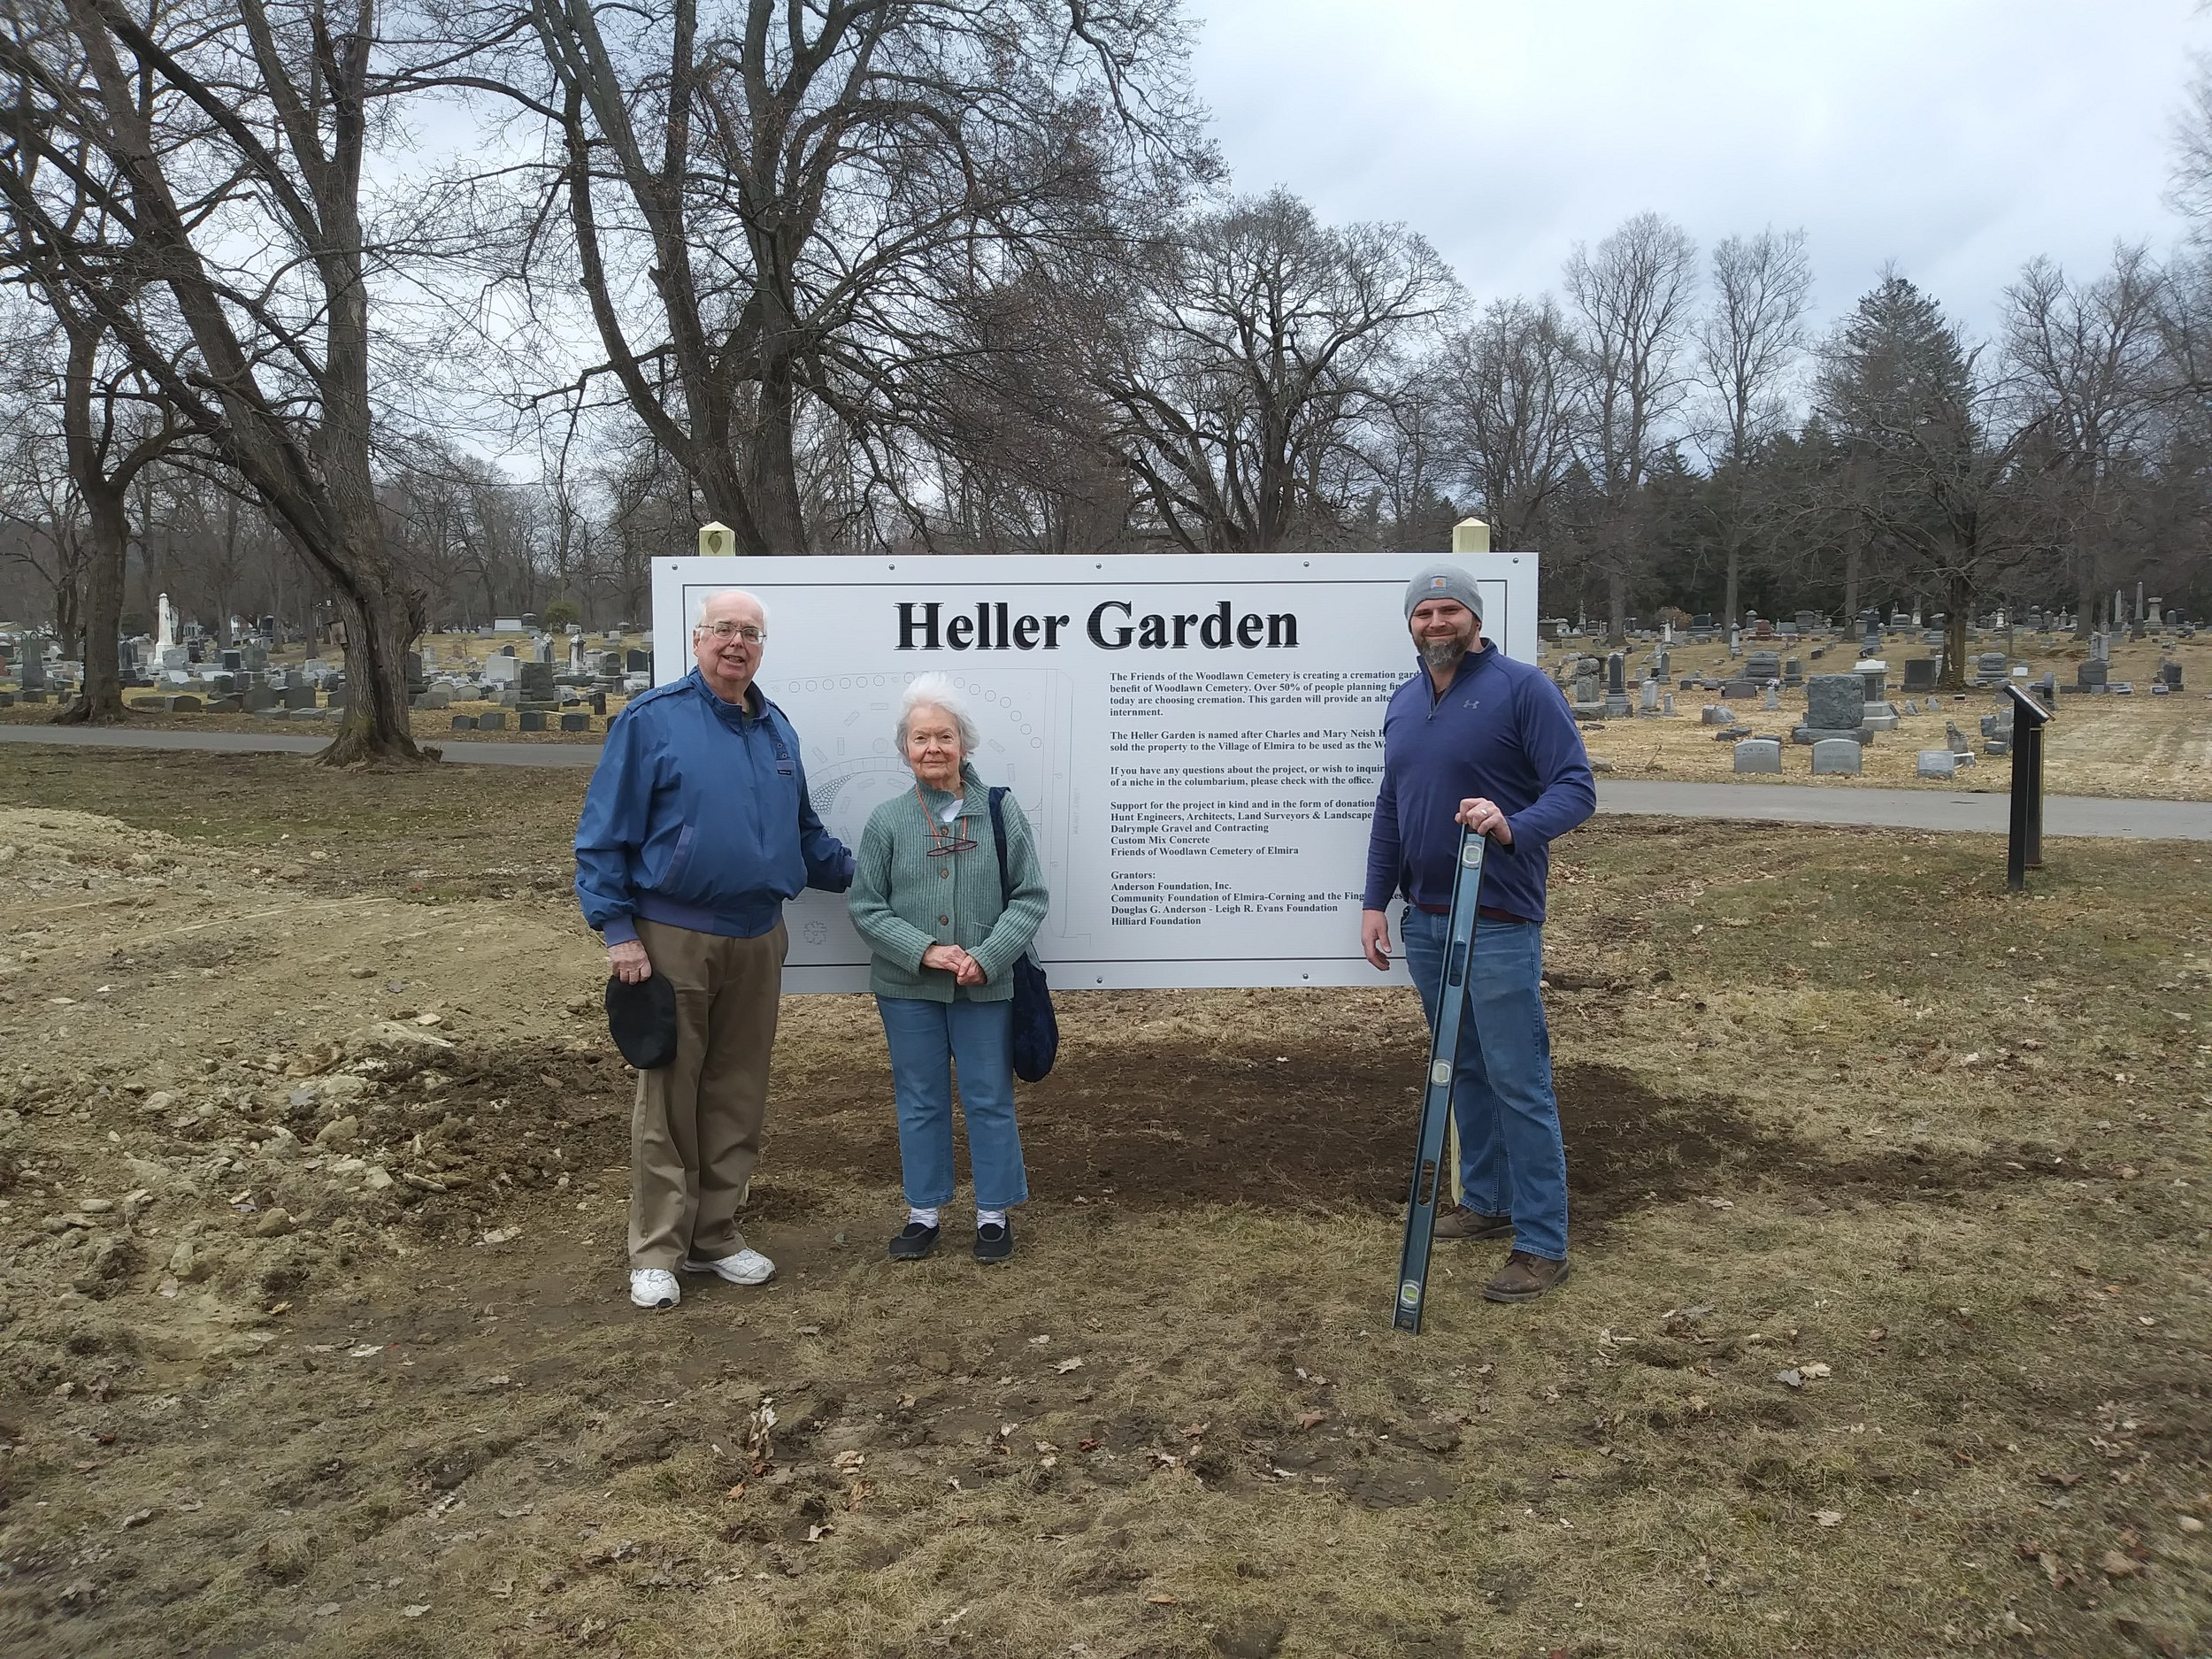 Laying the ground work for Heller Garden. Pictured are James Hare (member of Friends of Woodlawn Cemetery) and Susie Heller (sister to Hatsy Heller).